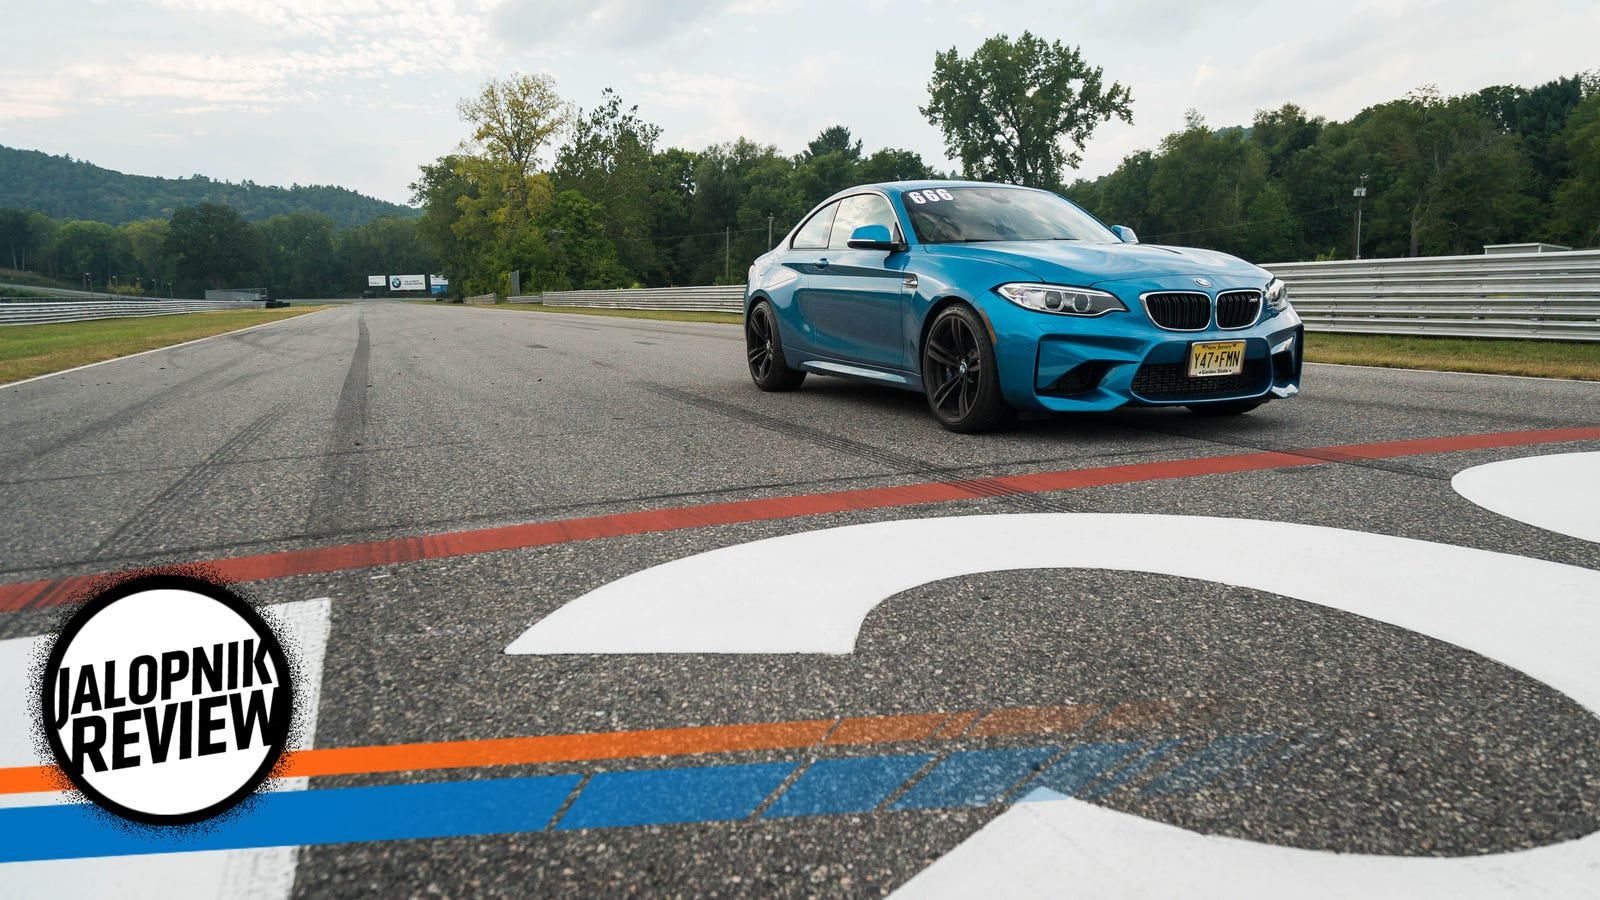 The 2017 BMW M2 Is A Fantastic Car For The Track, Not The Street